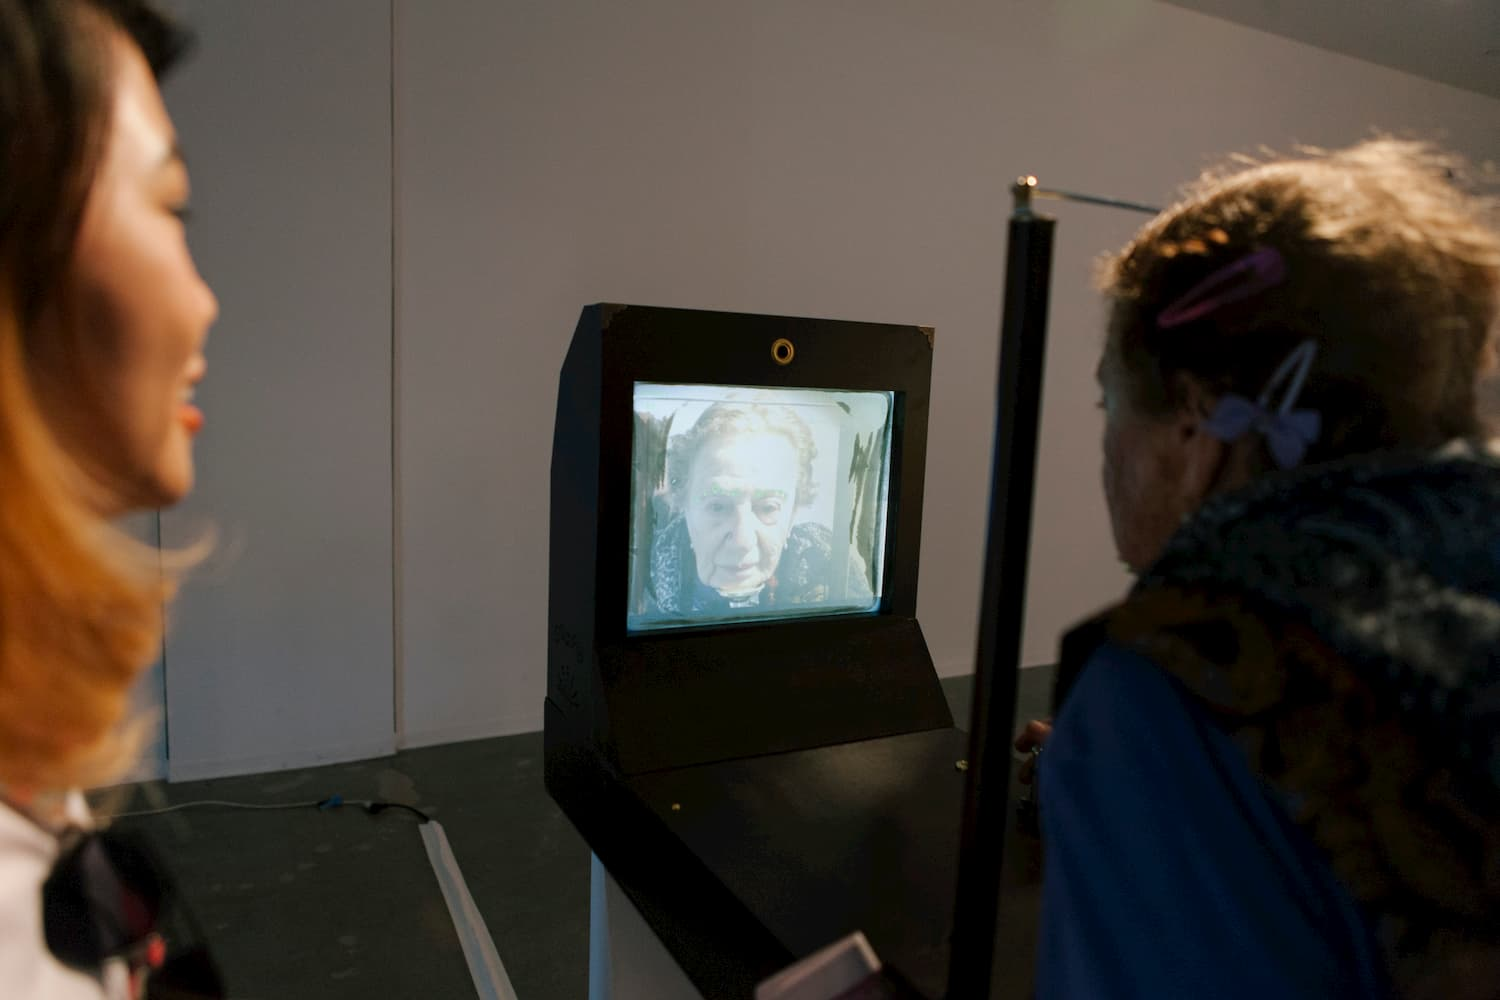 Person standing in front of of a camera and display which displays the person as older than they really are.